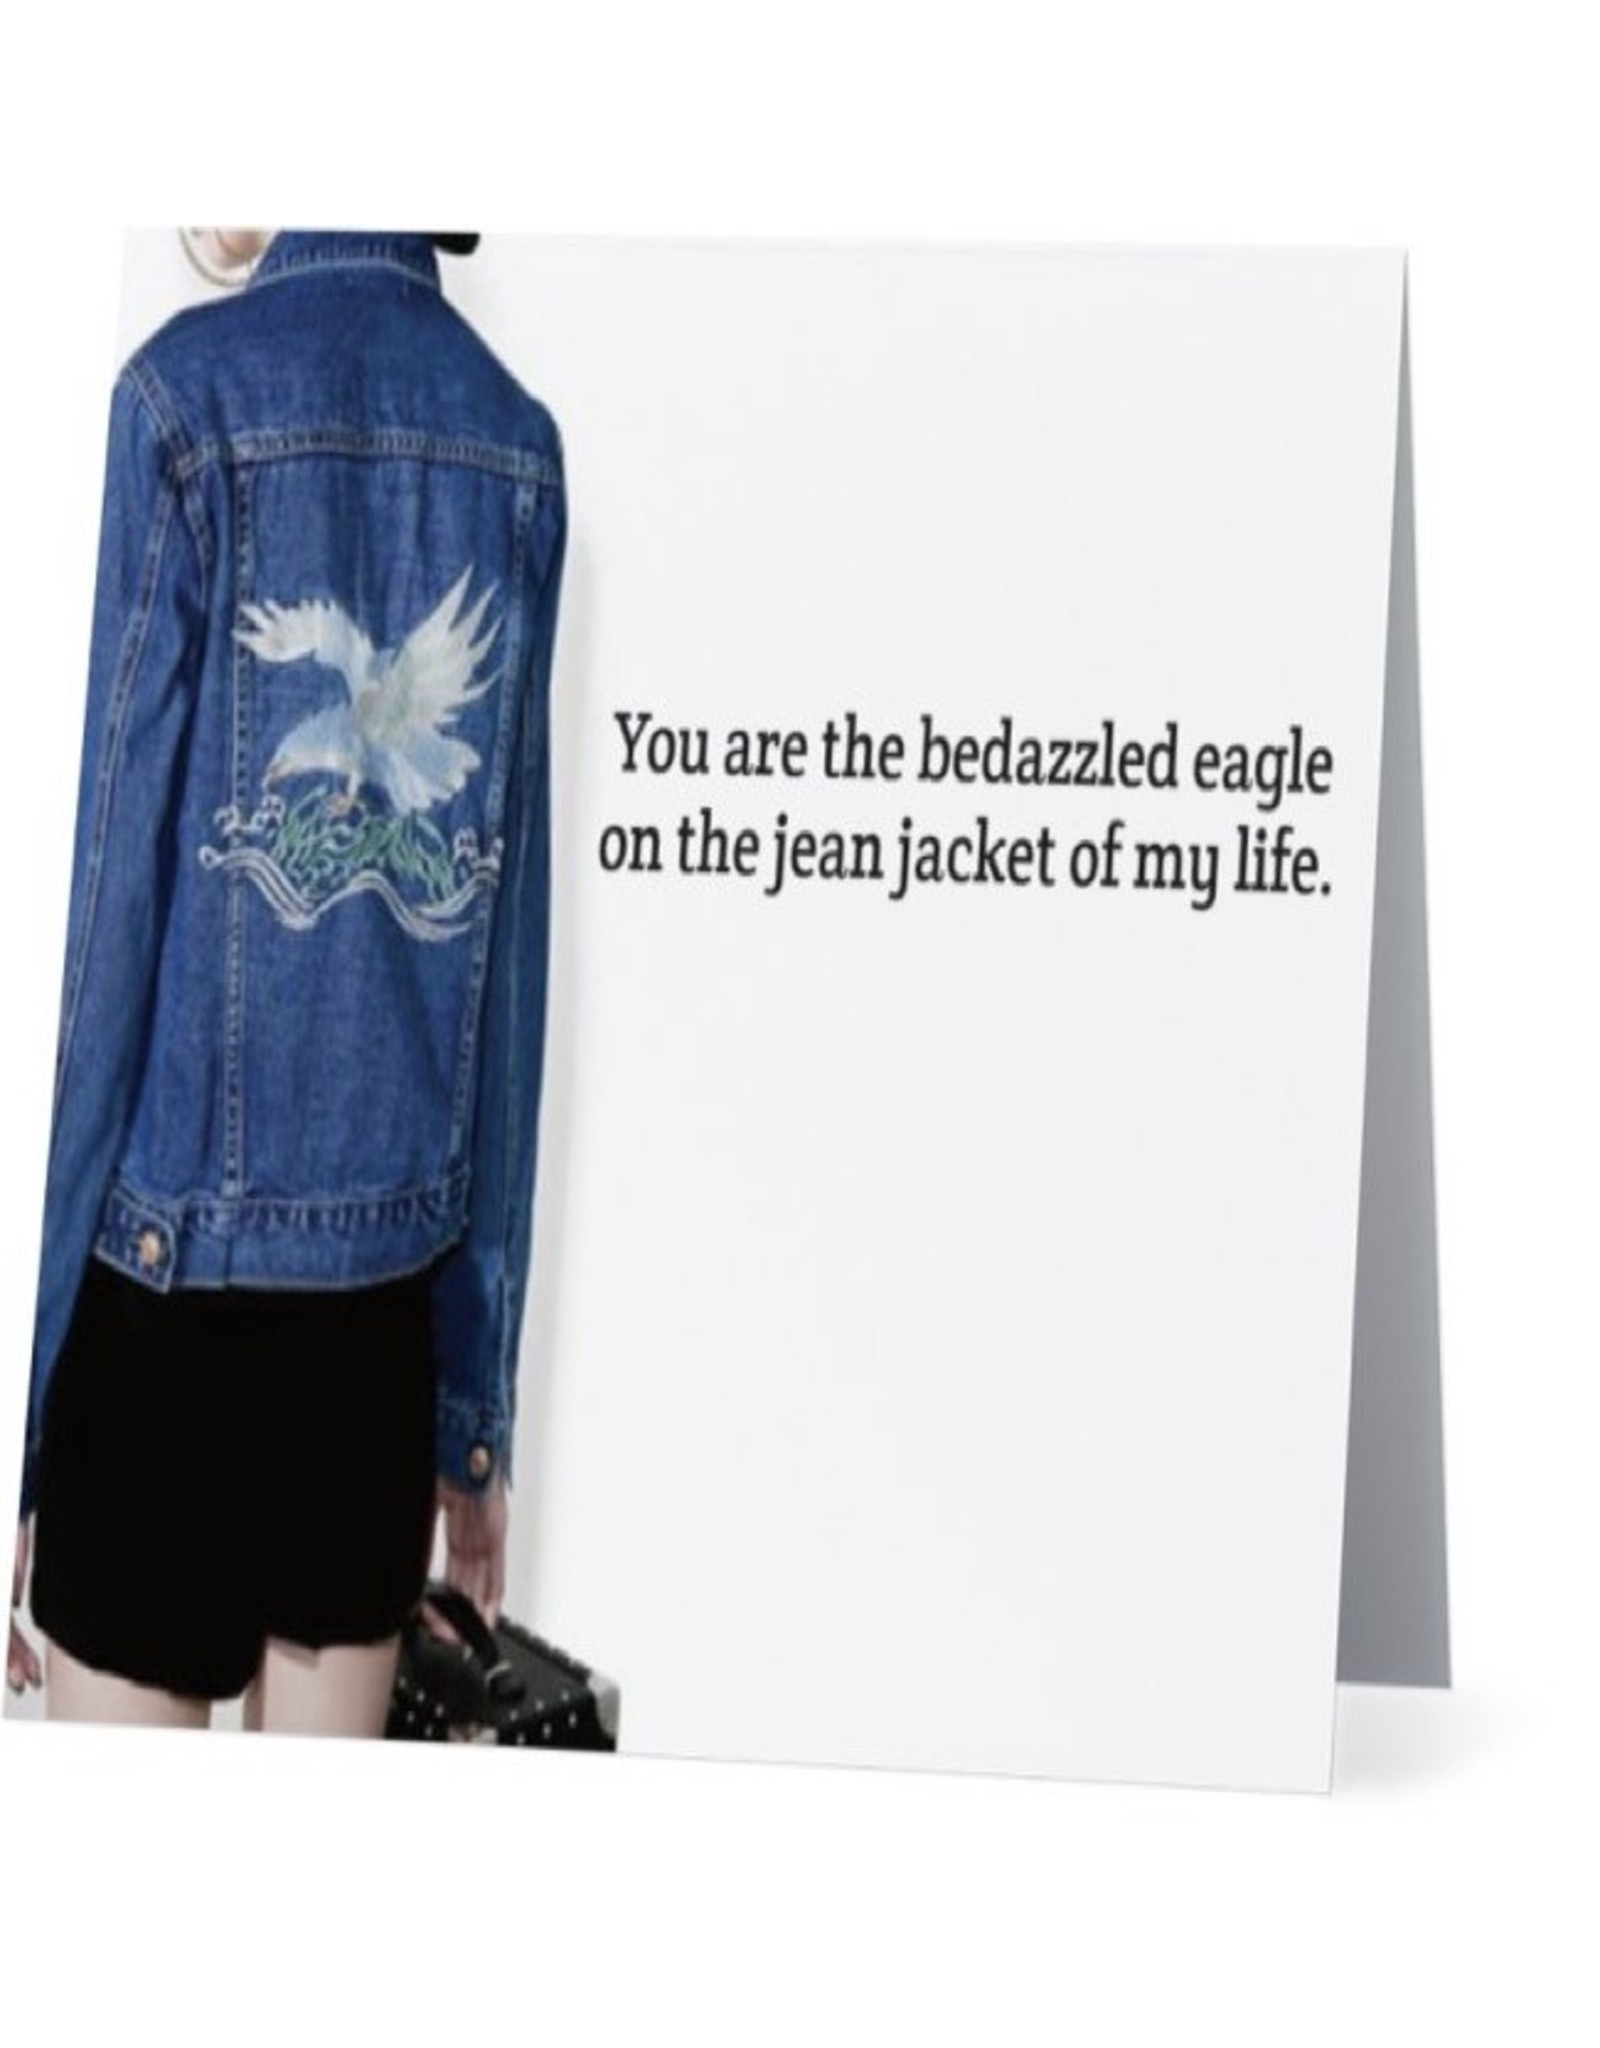 Card #045 - Bedazzled Eagle On Jean Jacket